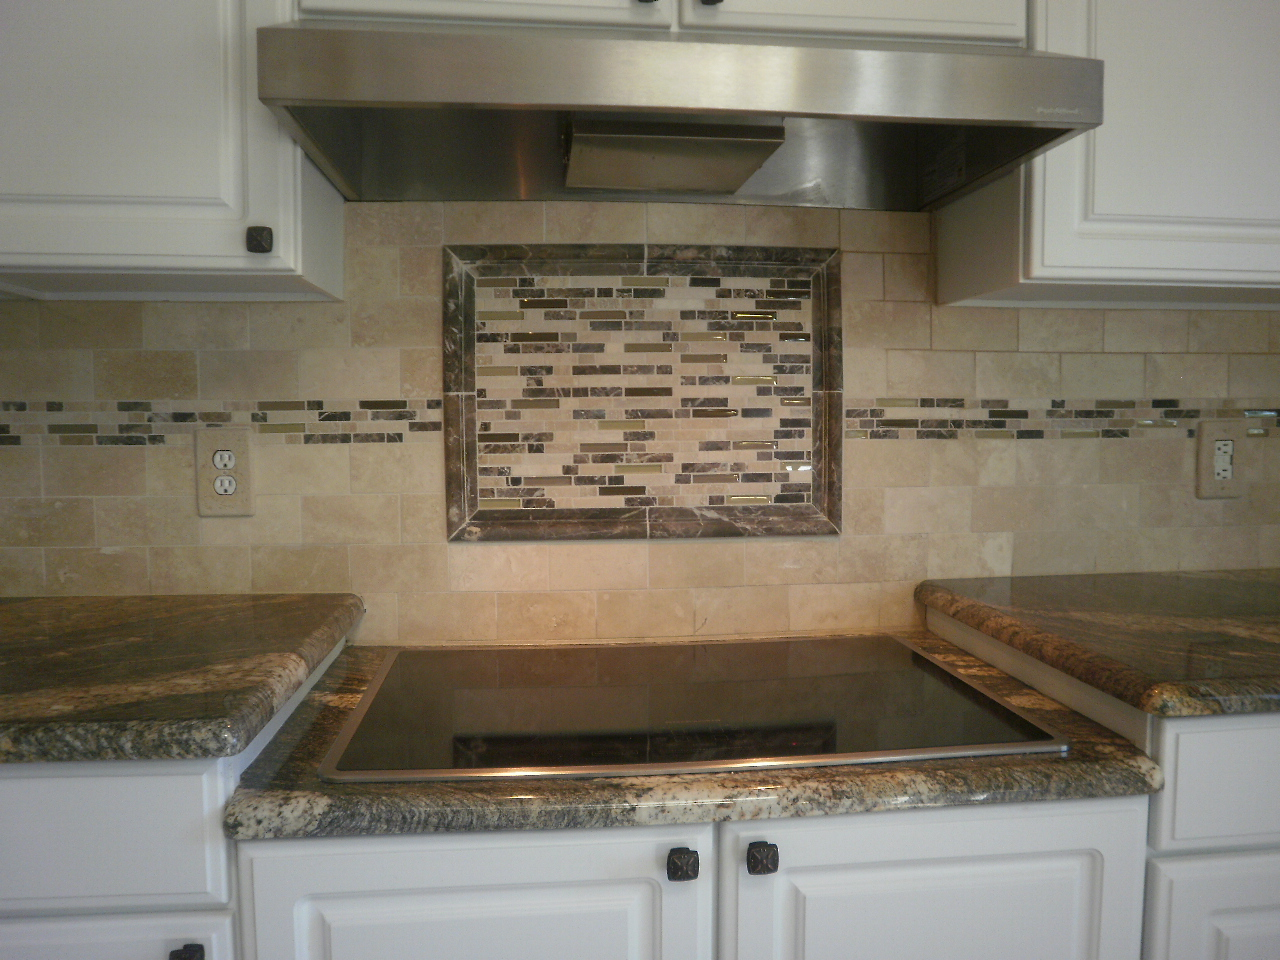 Kitchen backsplash ideas glass tile afreakatheart - Backsplash design ...